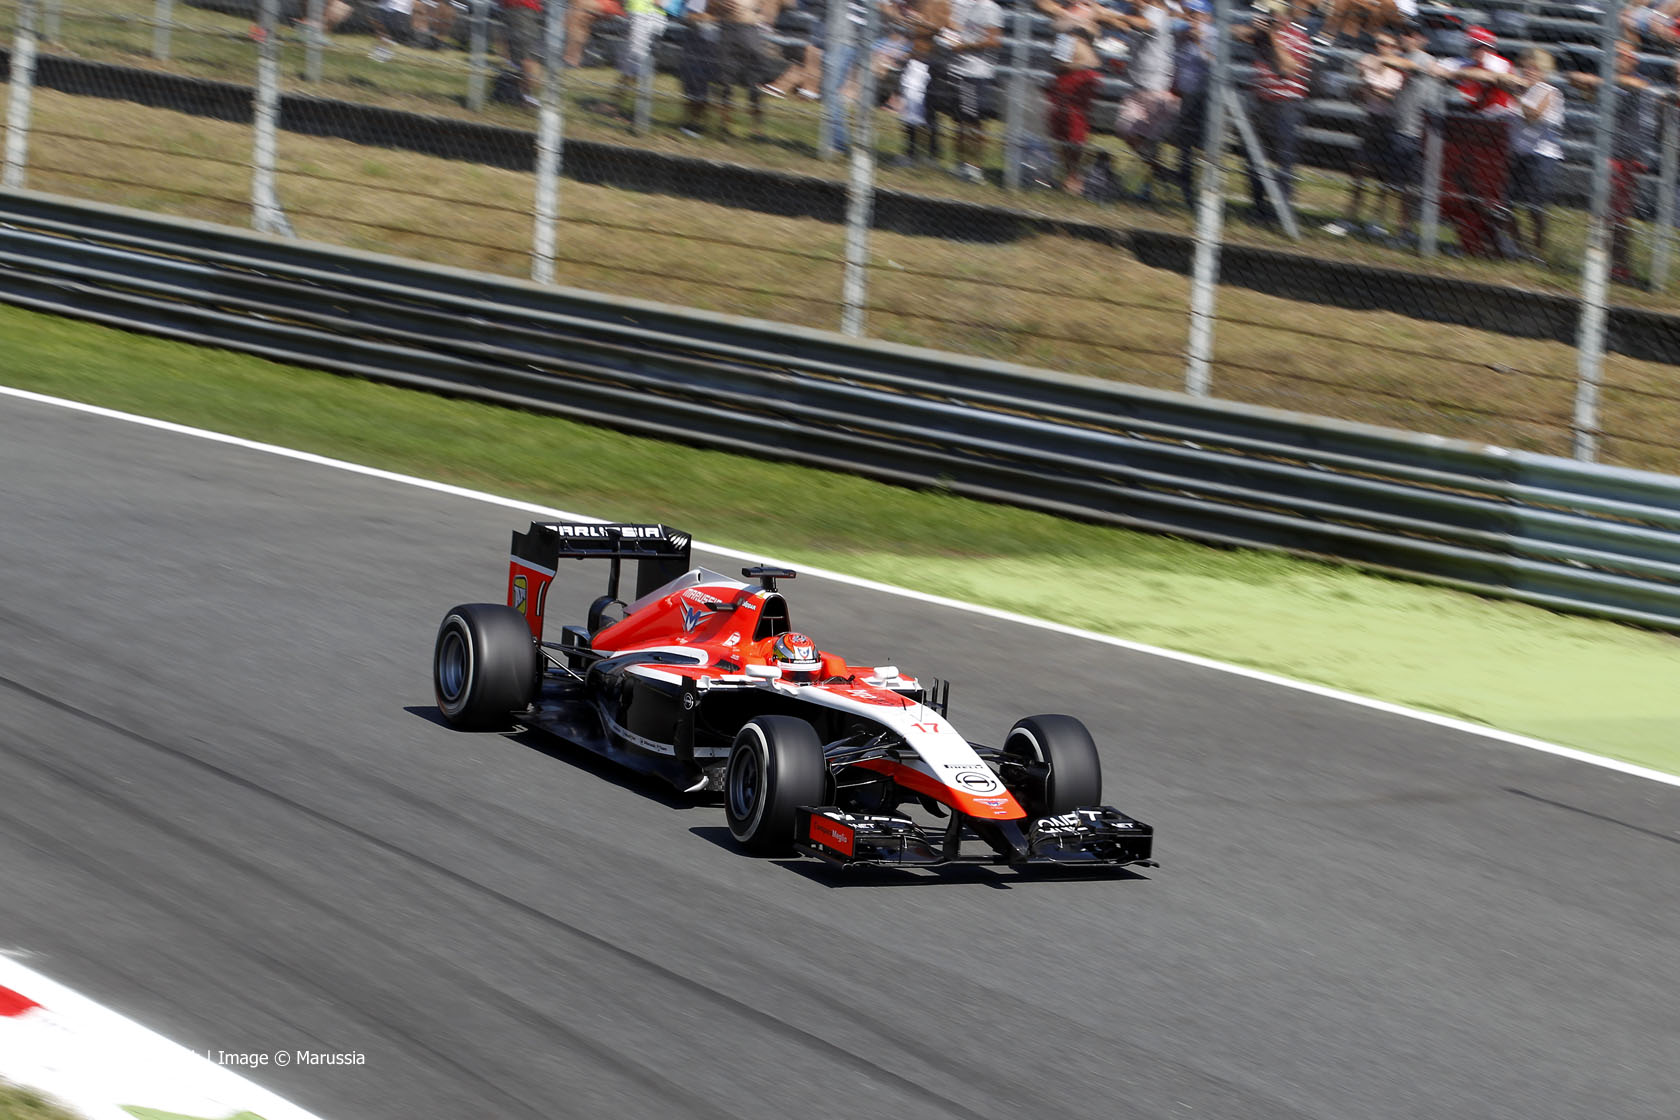 hight resolution of jules bianchi marussia monza 2014